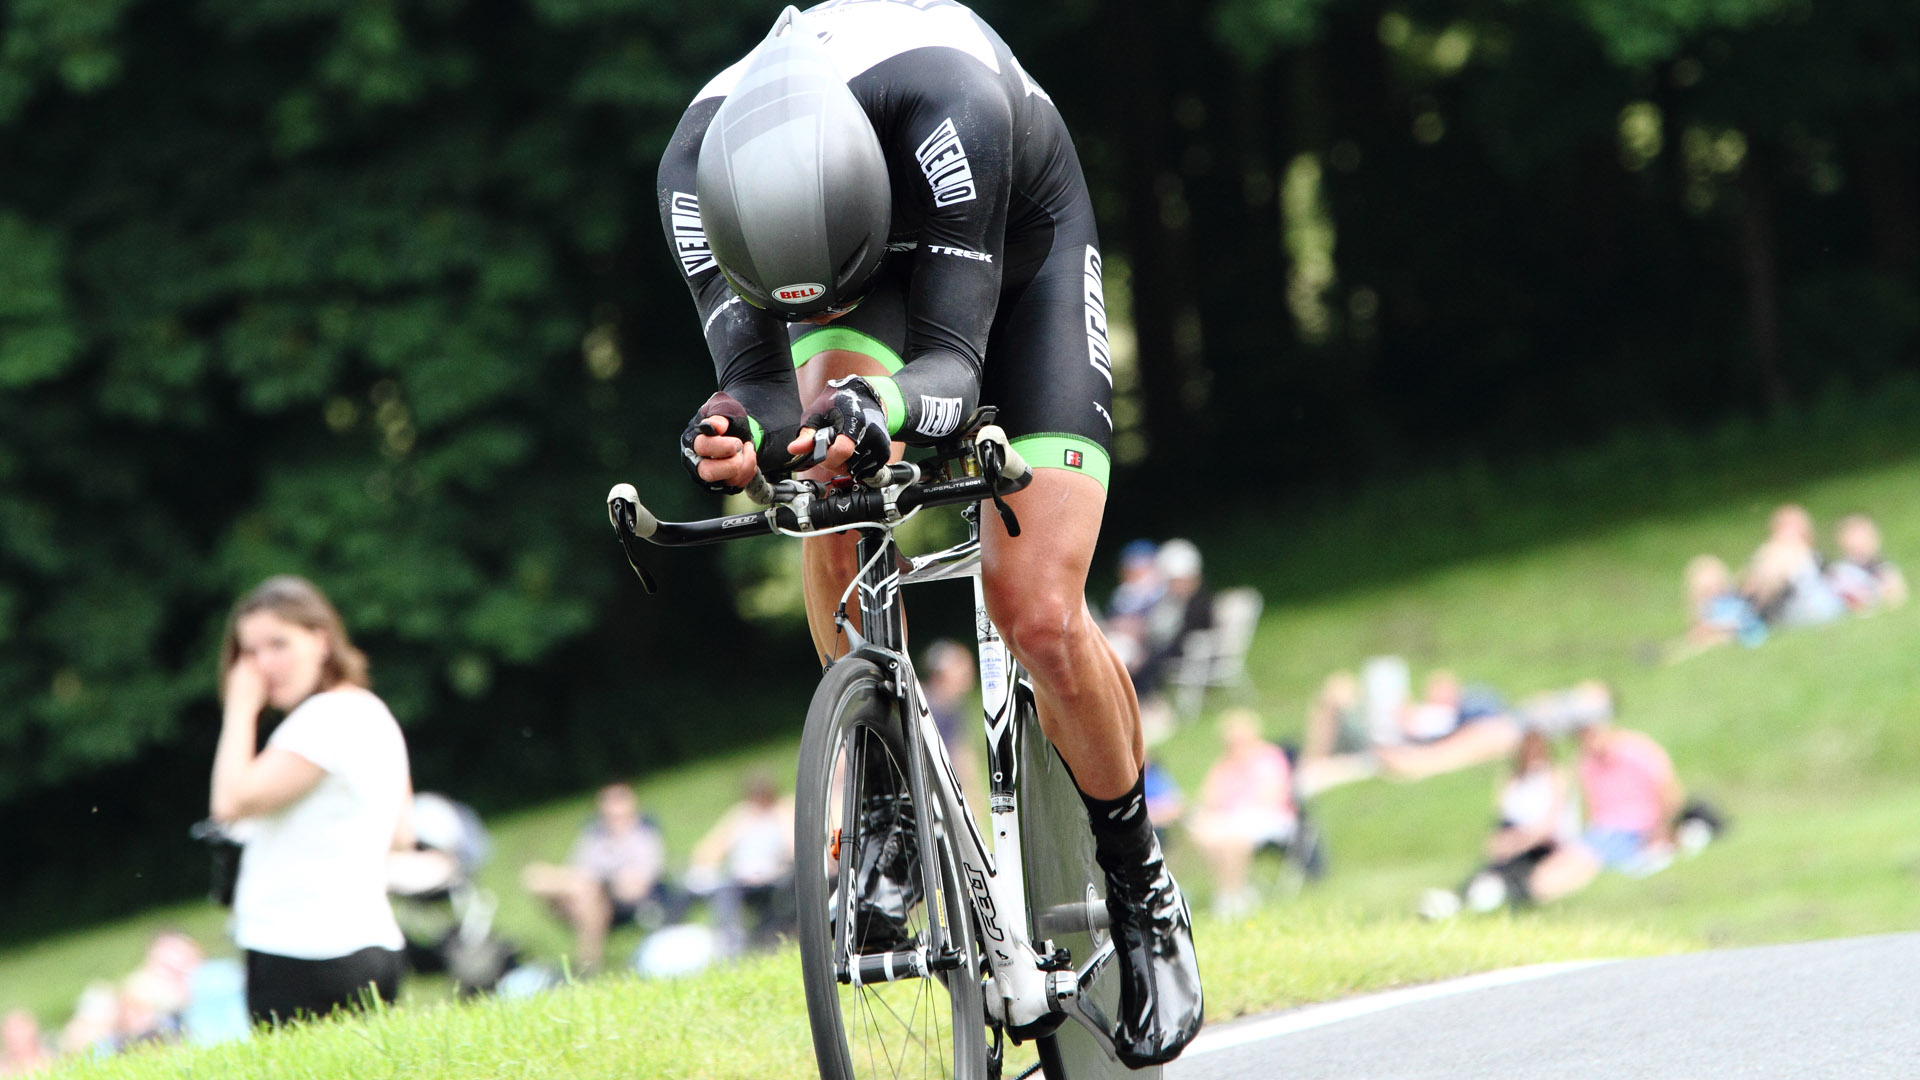 British Cycling National Road Championships Time Trial 2015 Cadwell Park